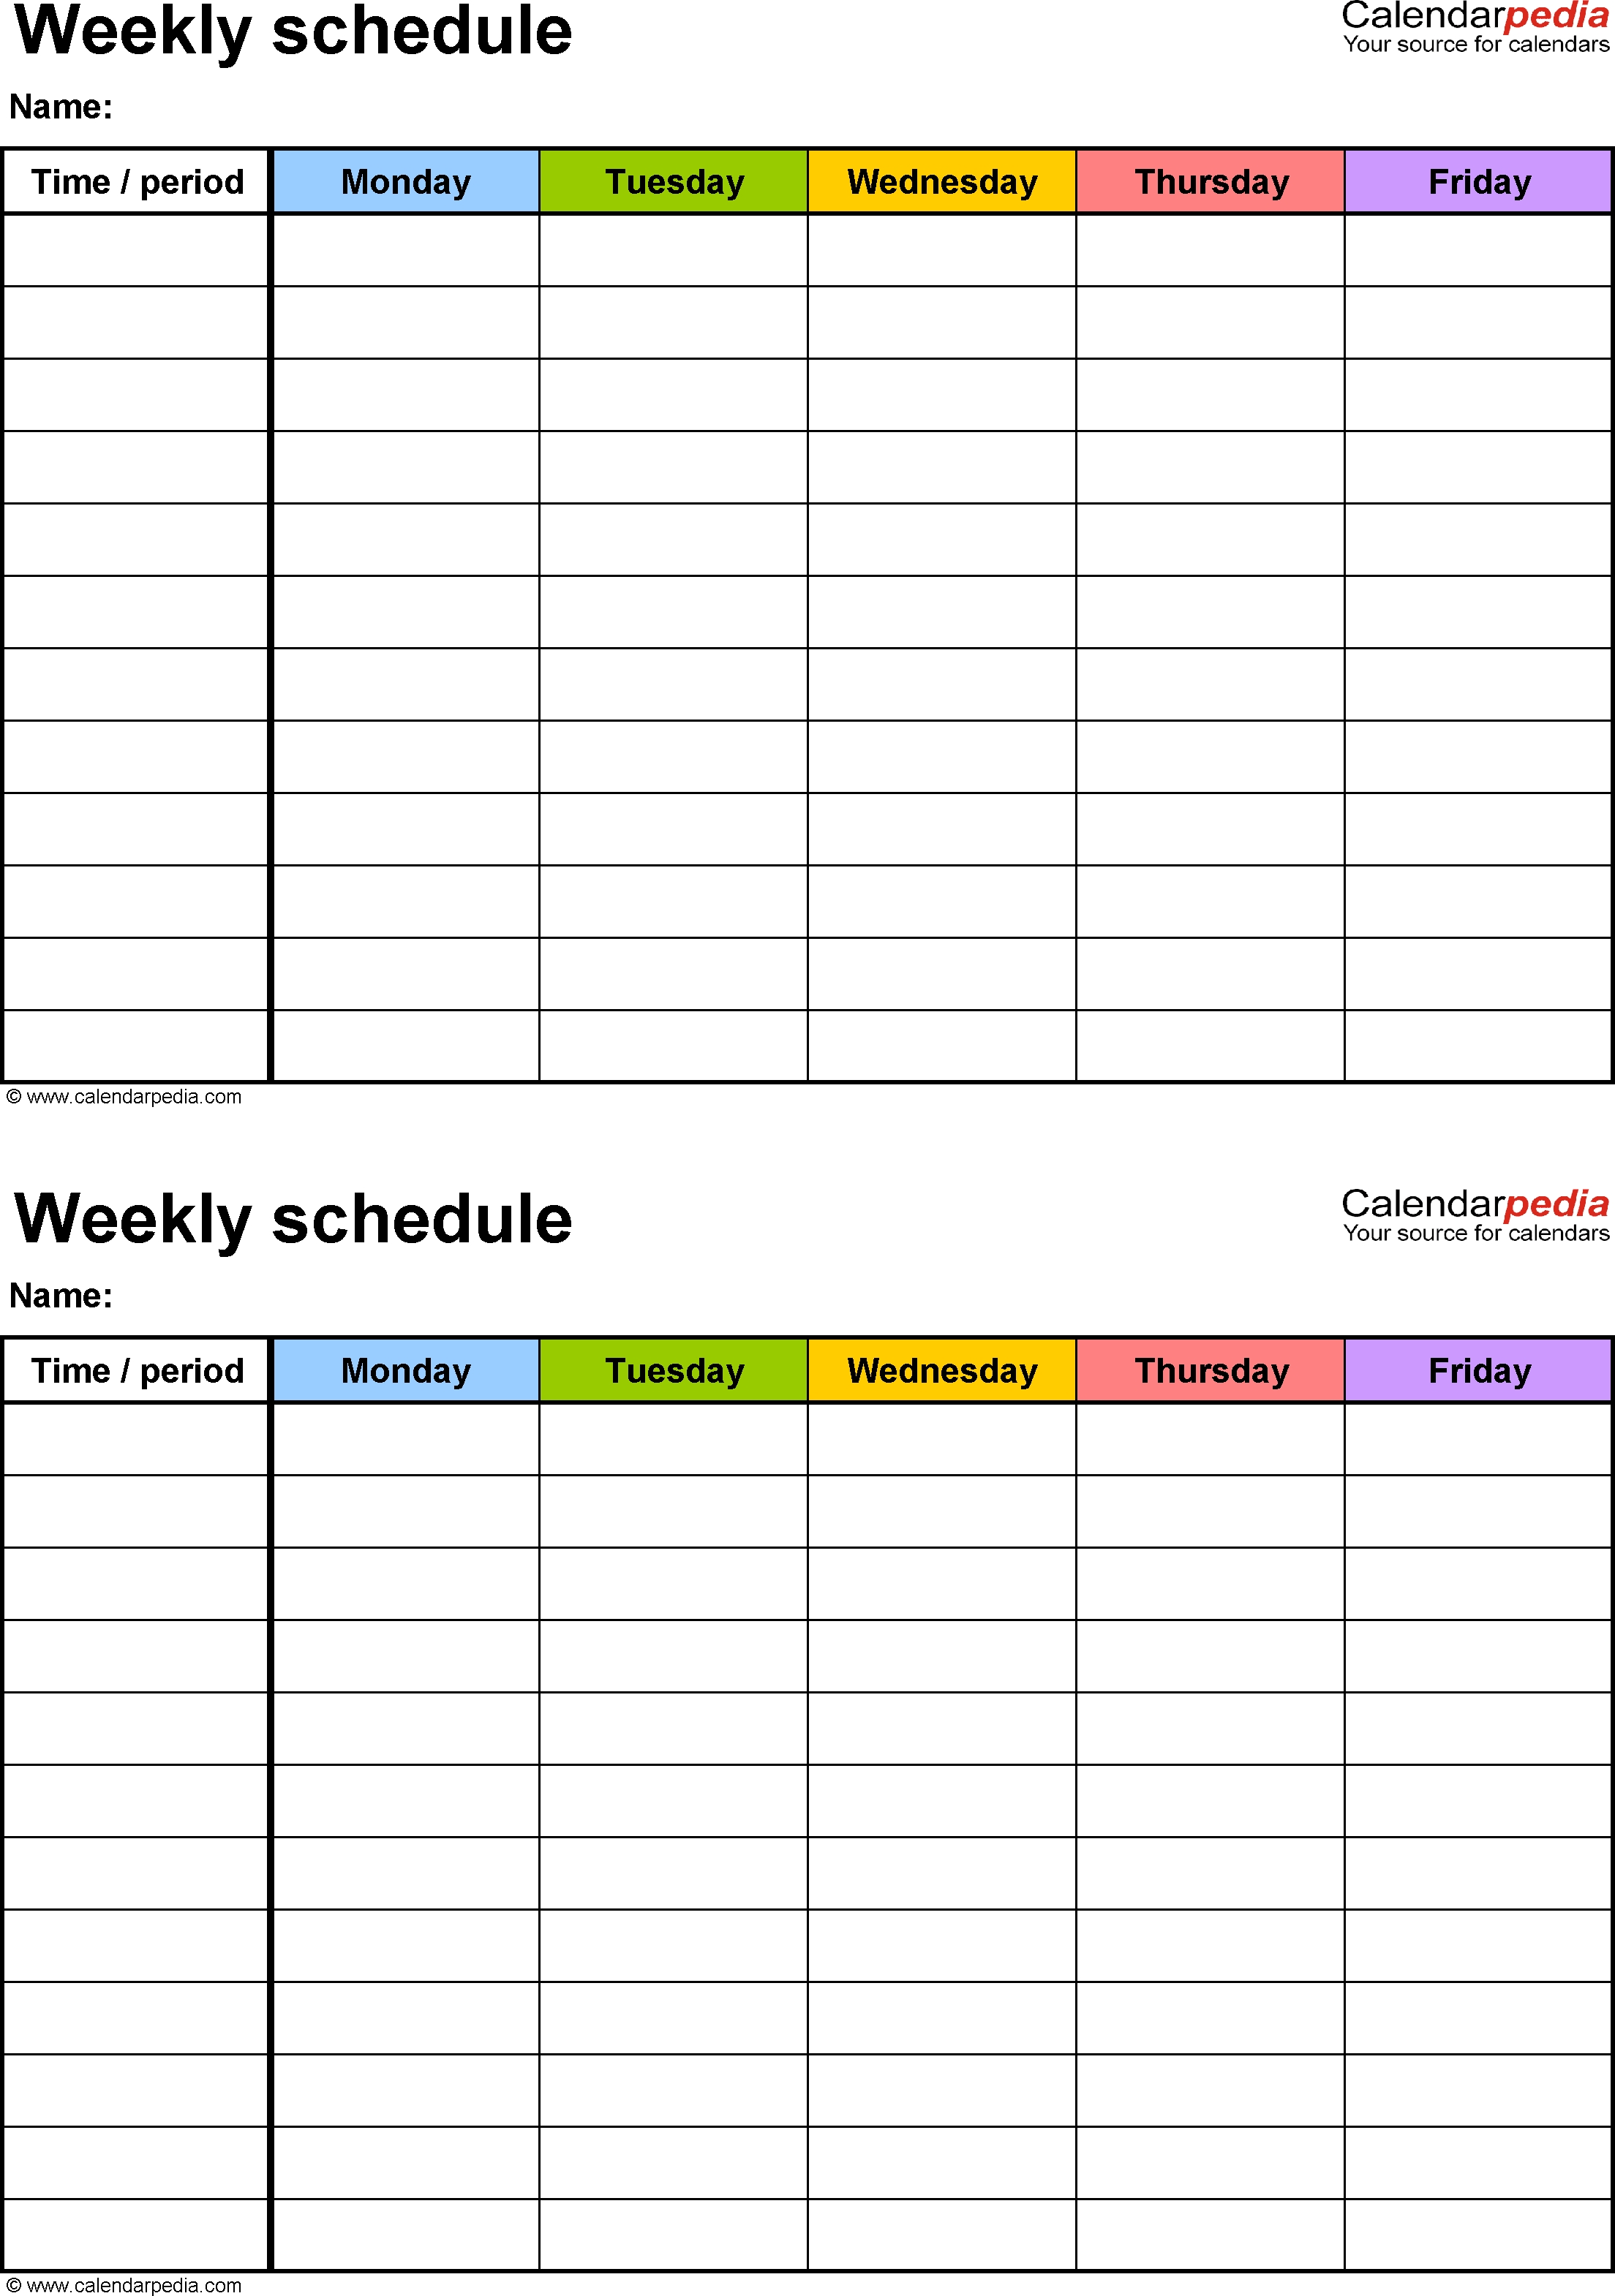 Free Weekly Schedule Templates For Word - 18 Templates-Weekly Calendar Templates Free Printable Monday-Friday